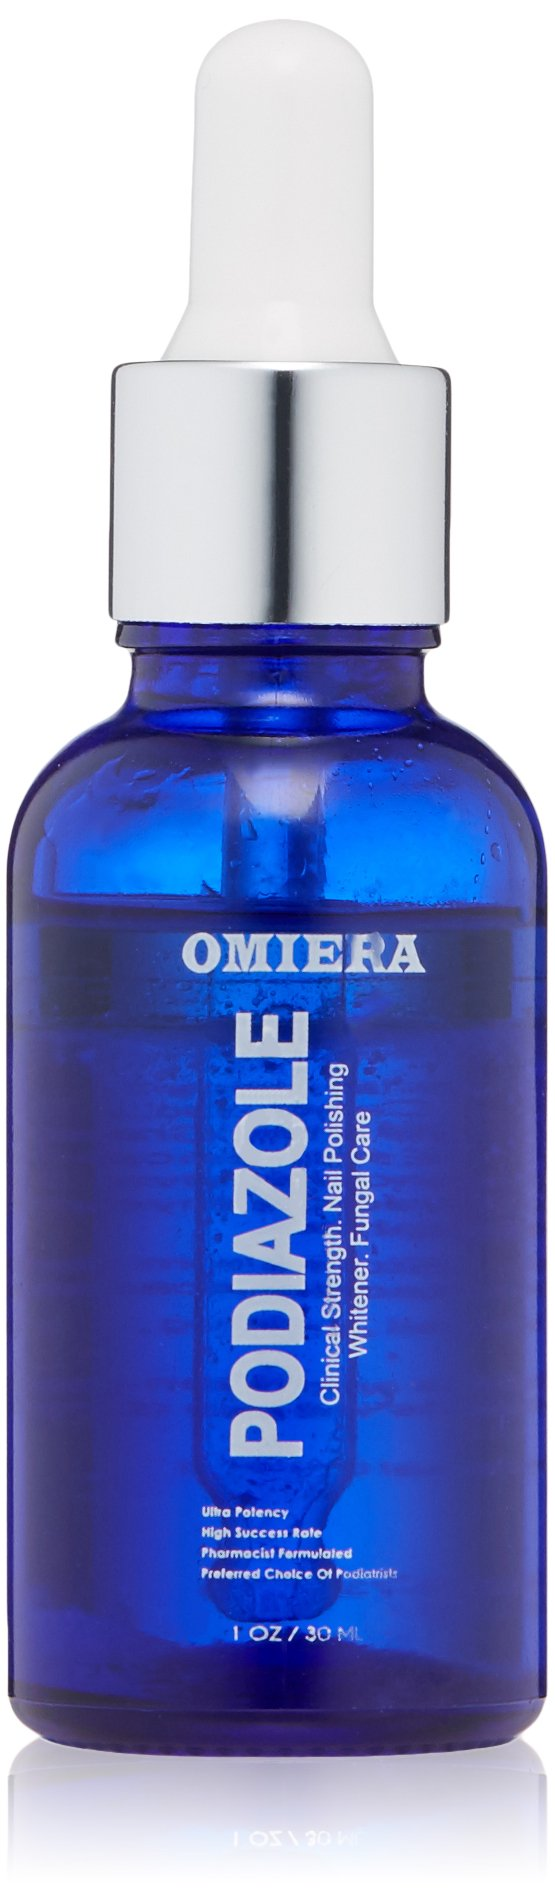 Omiera Toenail Fungus Treatment, Nail Fungus Treatment, Fungi Nails, Toe Fungus, Fingernail Fungus, Antifungal Nail Treatment - Restore Nails to Their Natural State with Podiazole, 1.0 fl. oz by Omiera